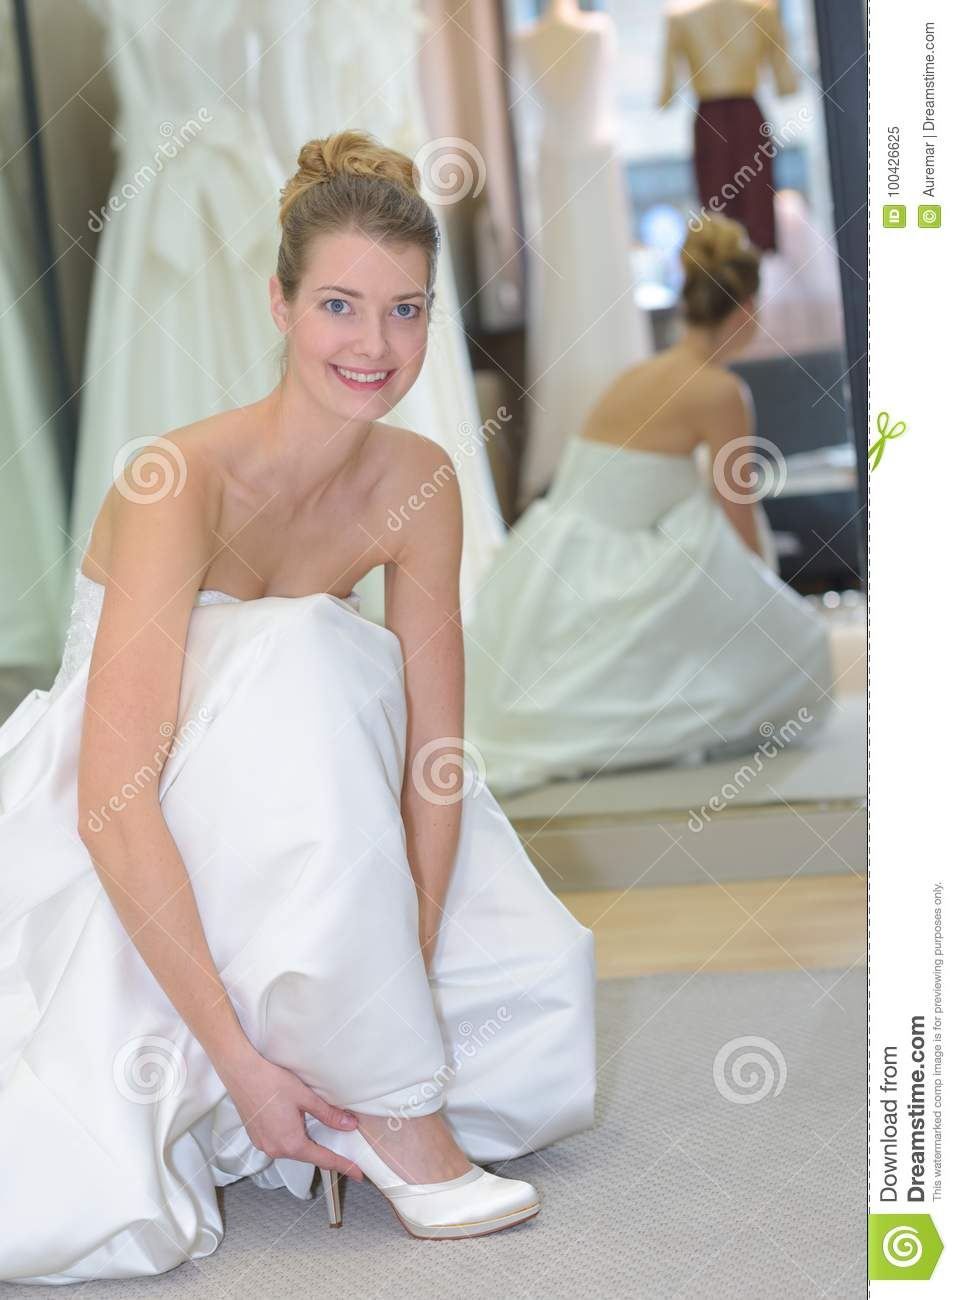 3cbca119dd572 Portrait Woman Trying On Wedding Shoes Stock Image - Image of size ...